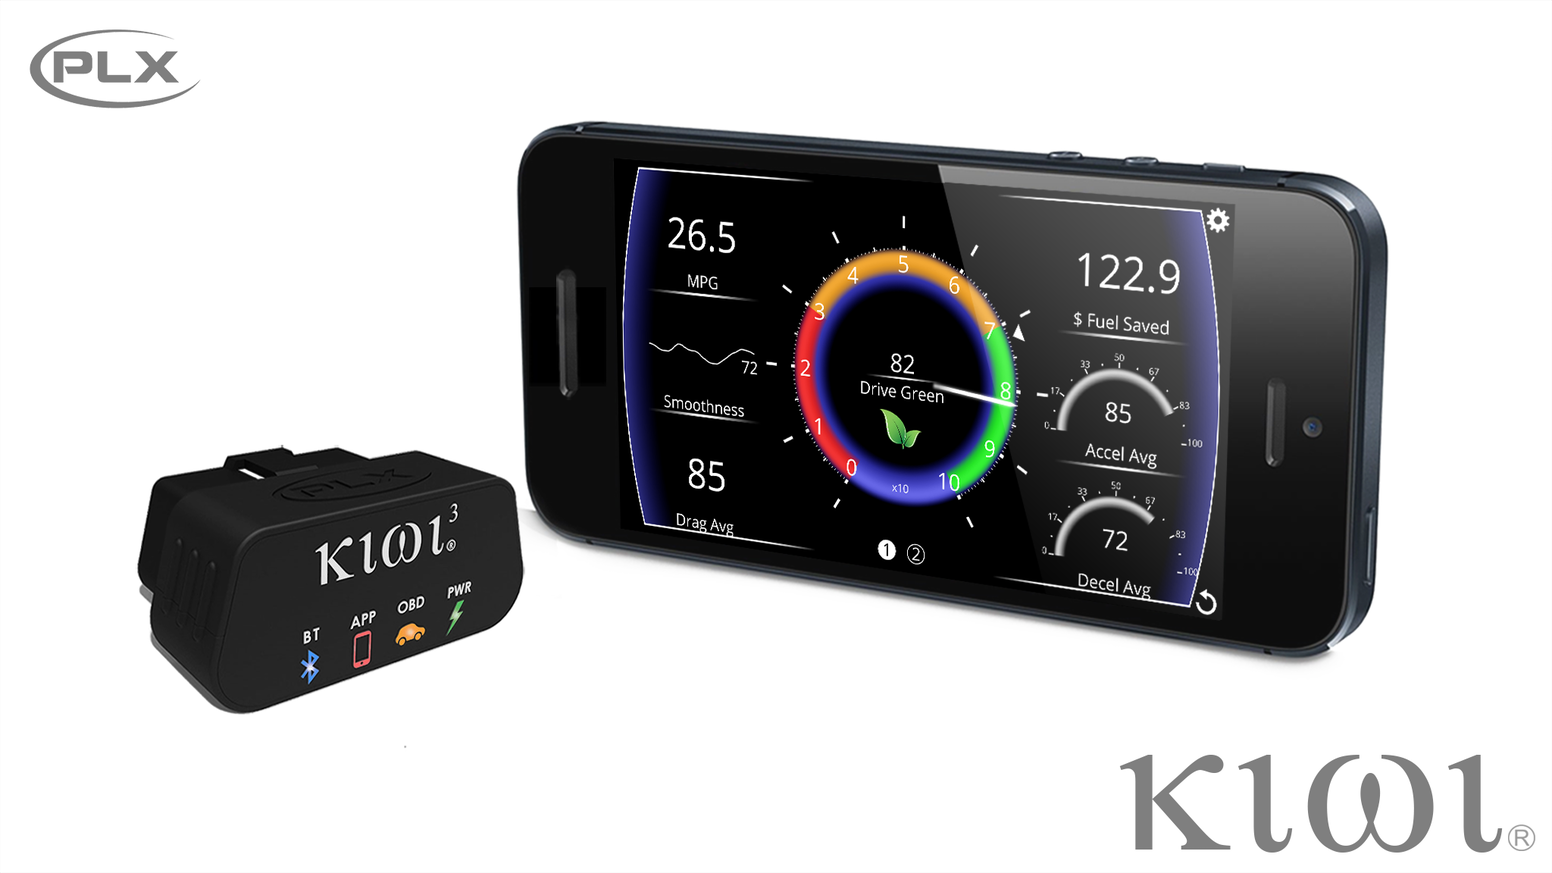 kiwi obd car connected app reinvented by plx devices kickstarter